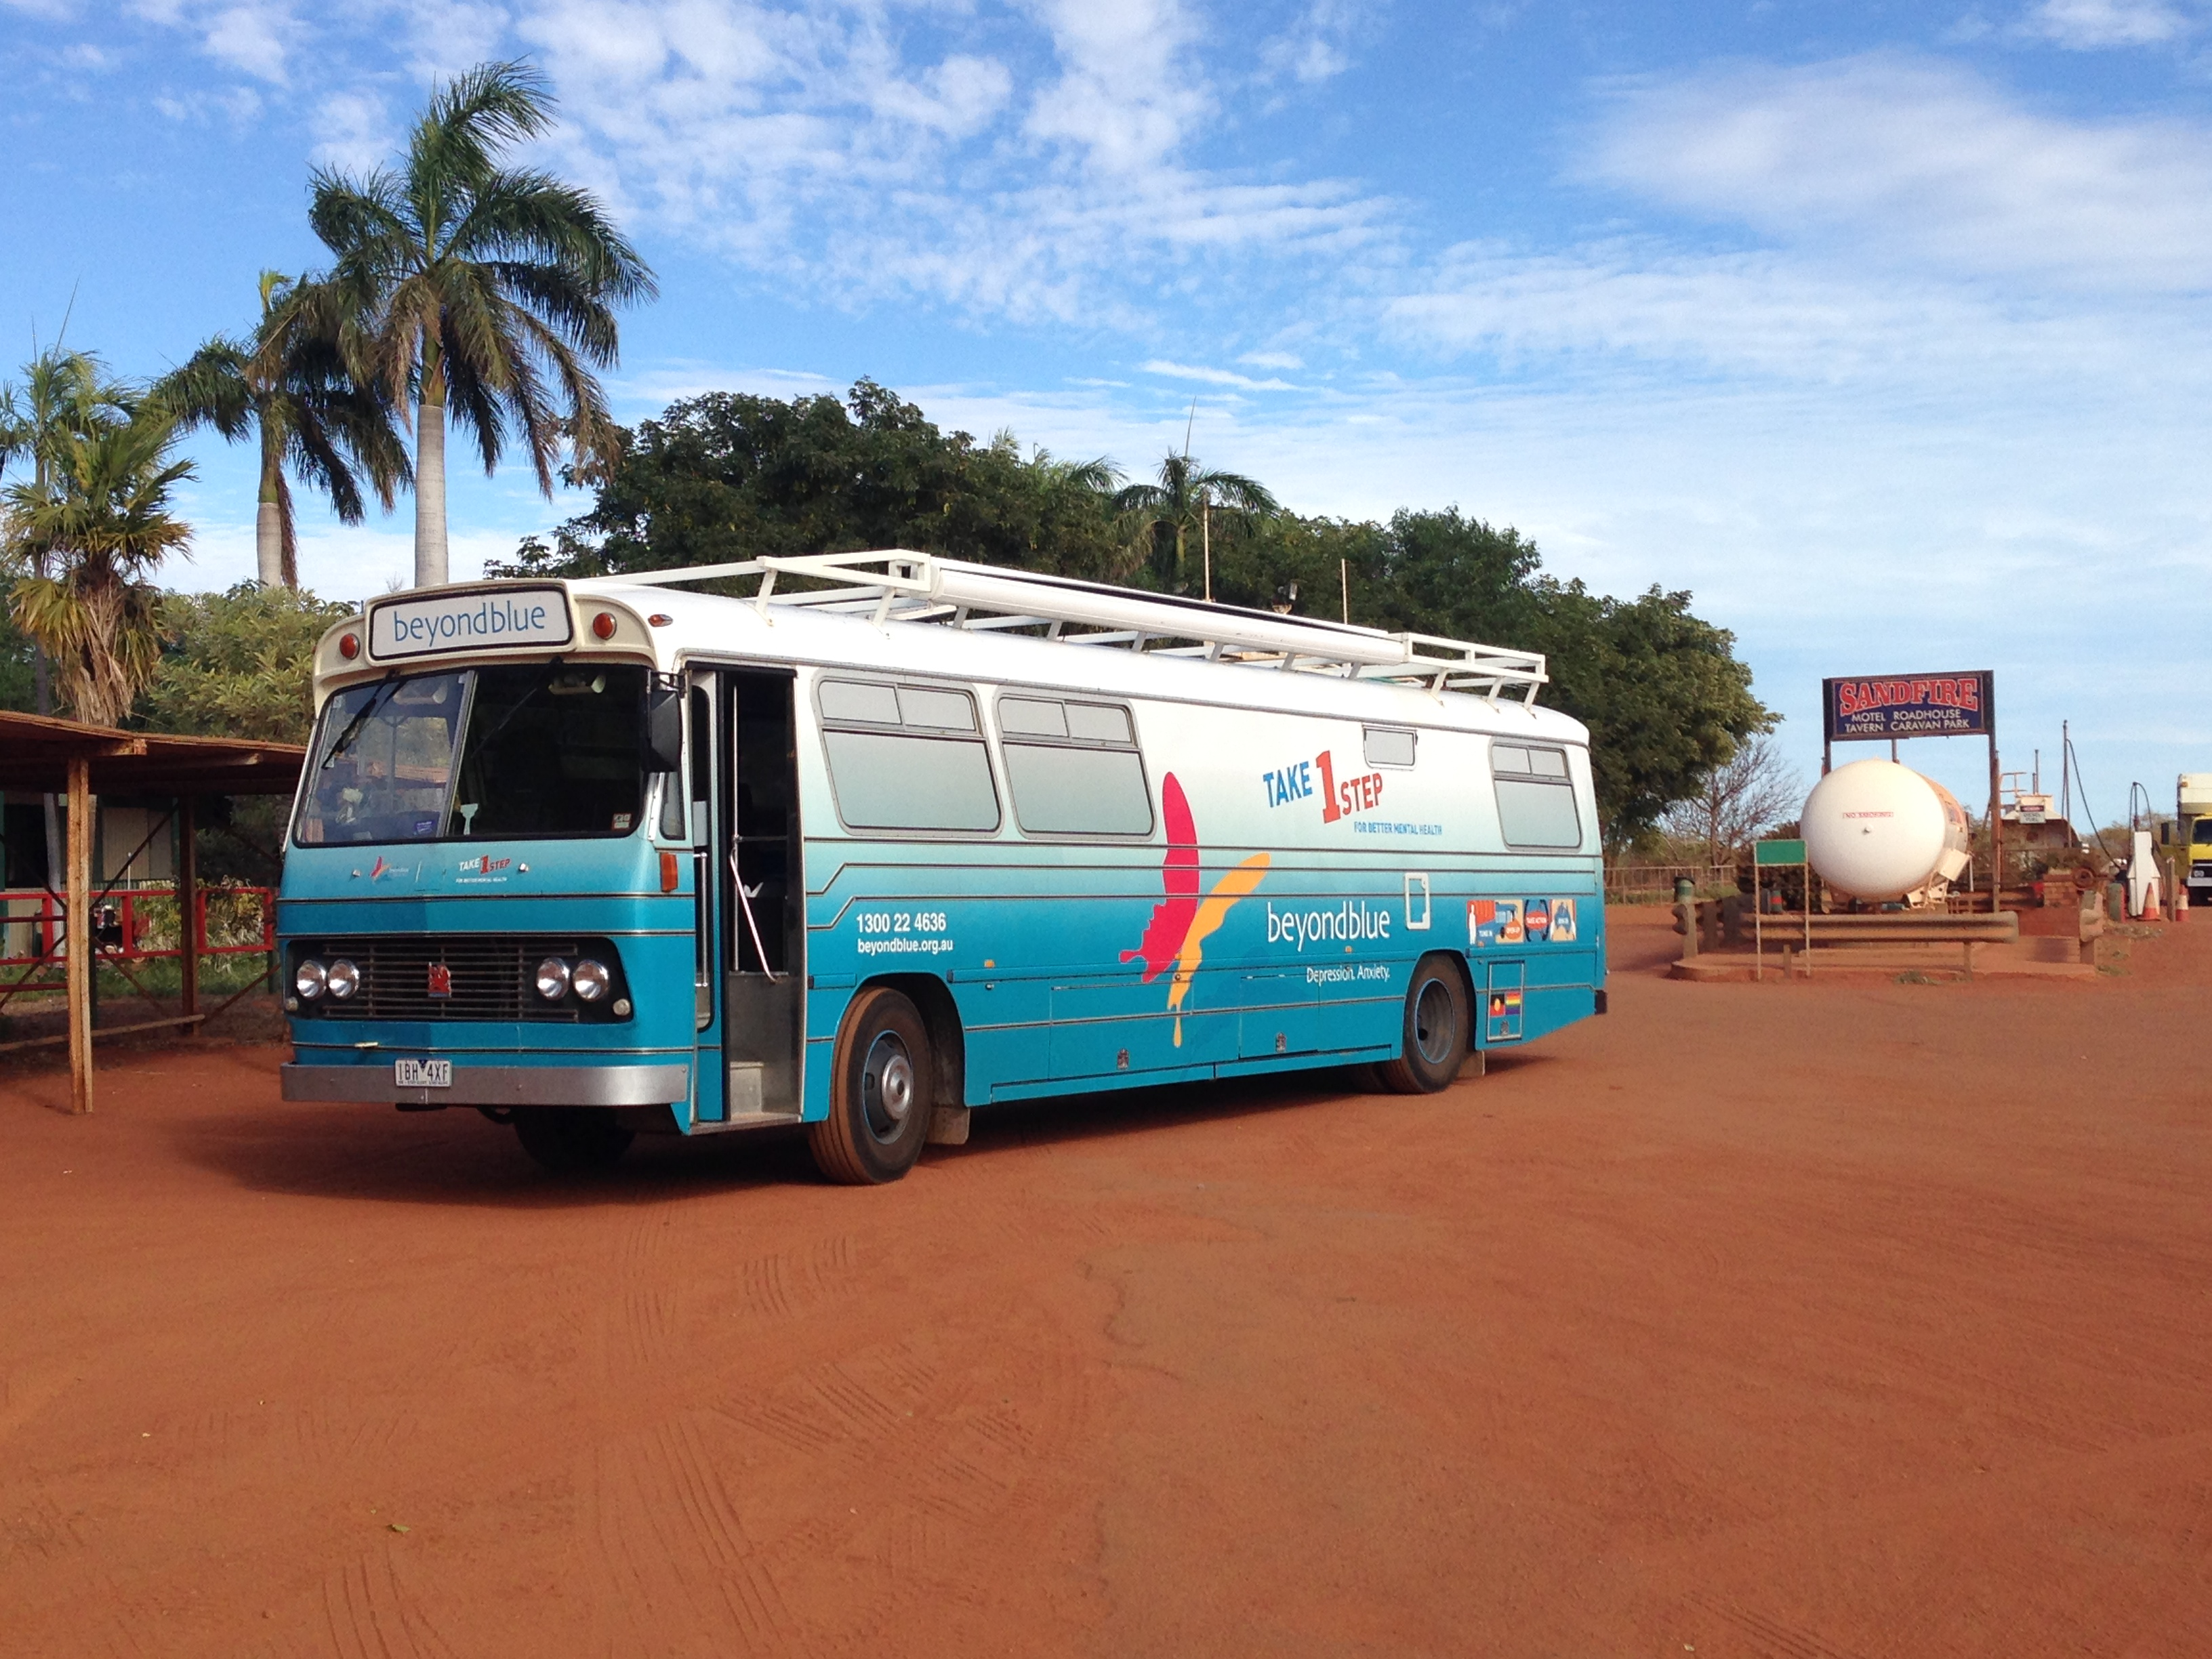 Departing Sandfire Roadhouse for the trip north to Broome.